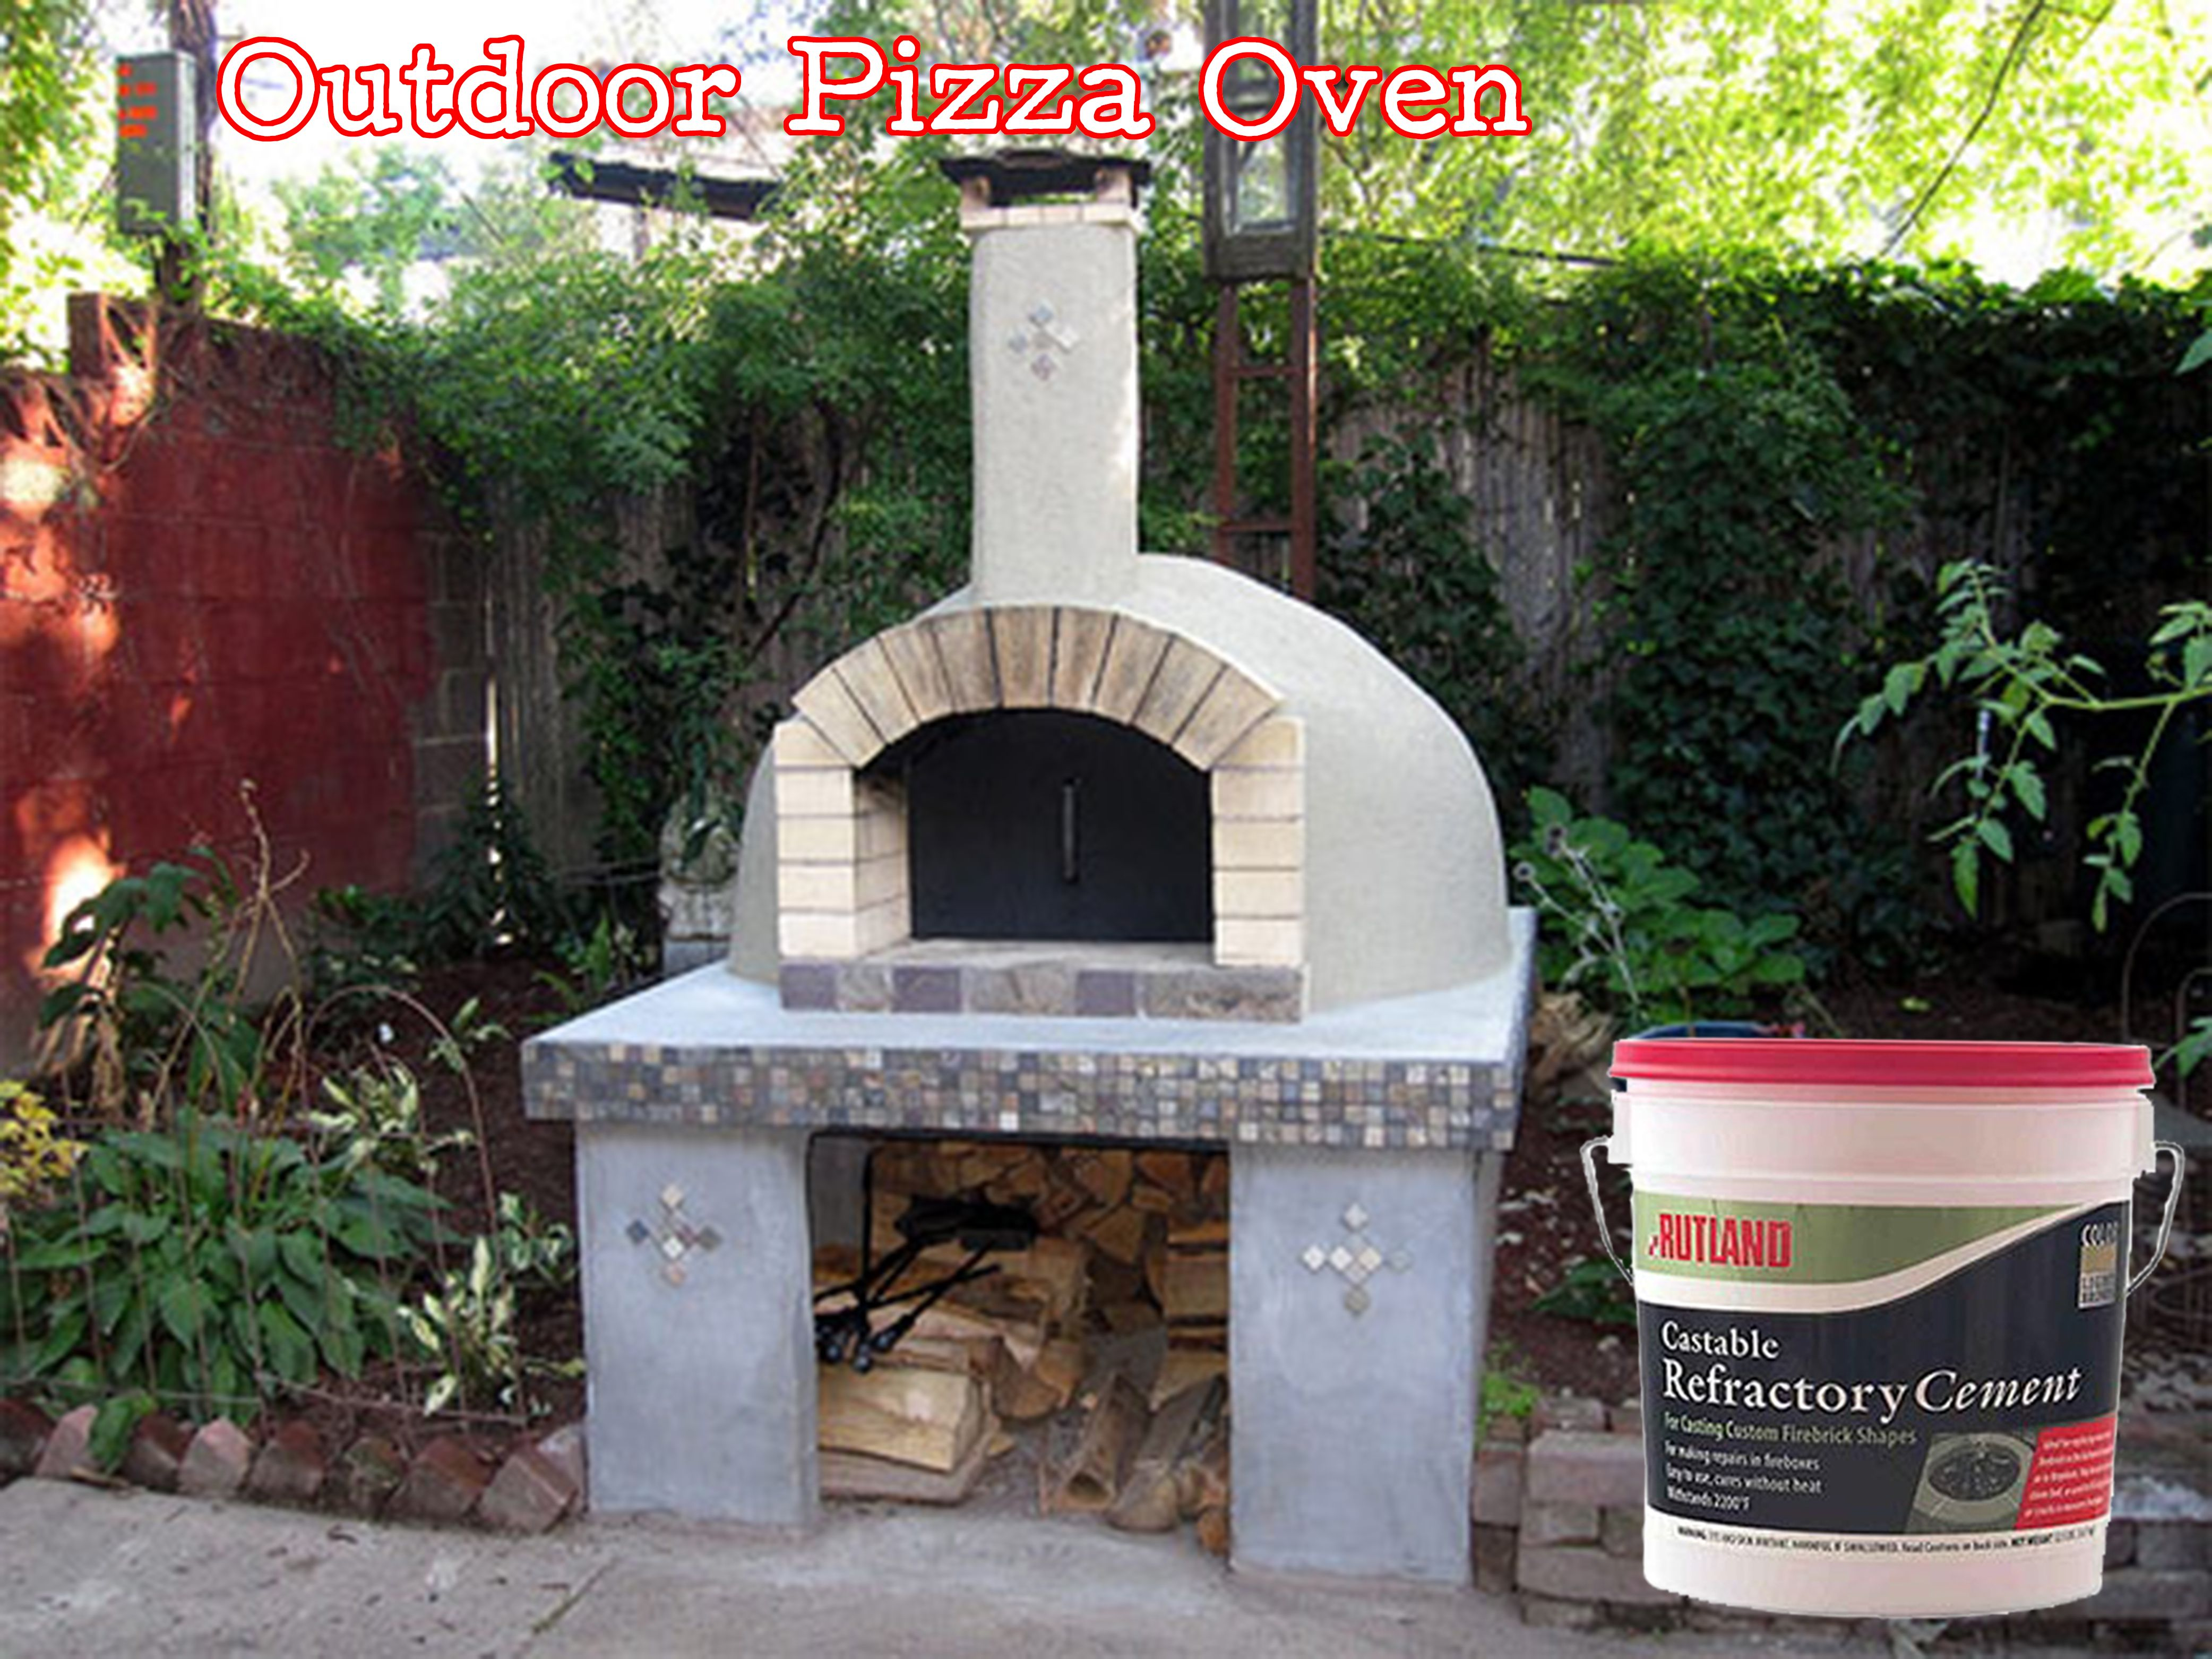 Rutland S Cale Refractory Cement Is A Great Product For Making Your Own Outdoor Pizza Oven You Can Find It Online At Www